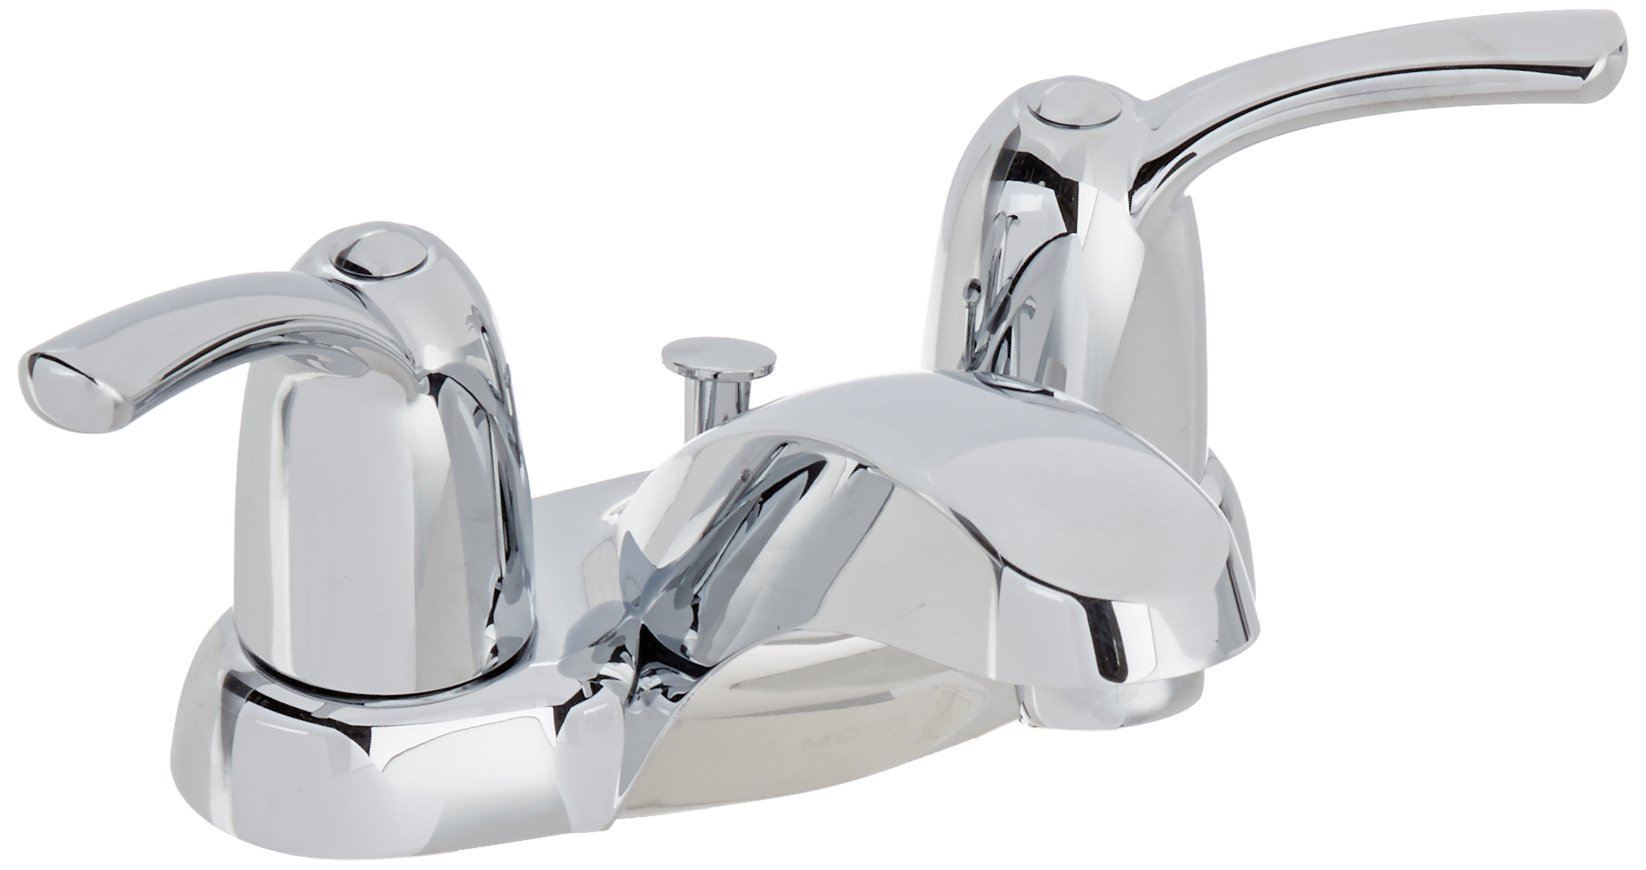 MOEN WS84403 2 Lever Faucet, Chrome by Moen